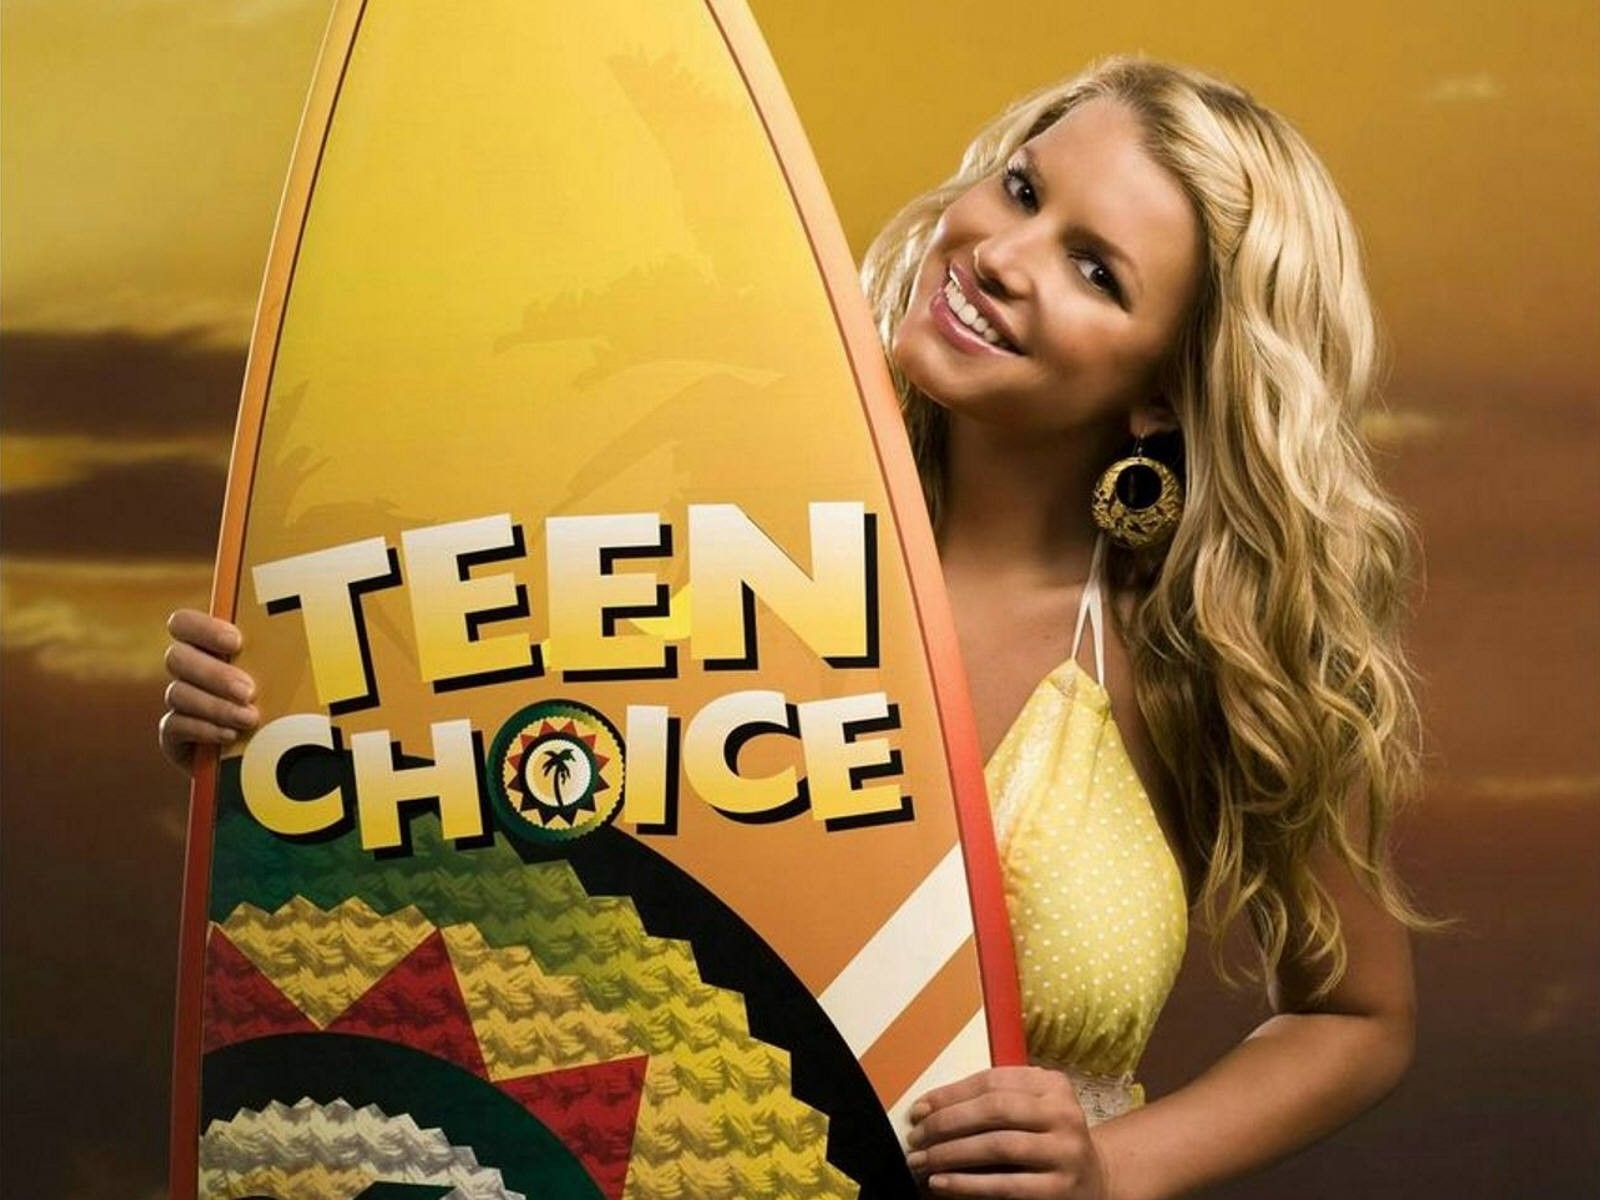 Wallpaper di Jessica Simpson per il Teen Choice